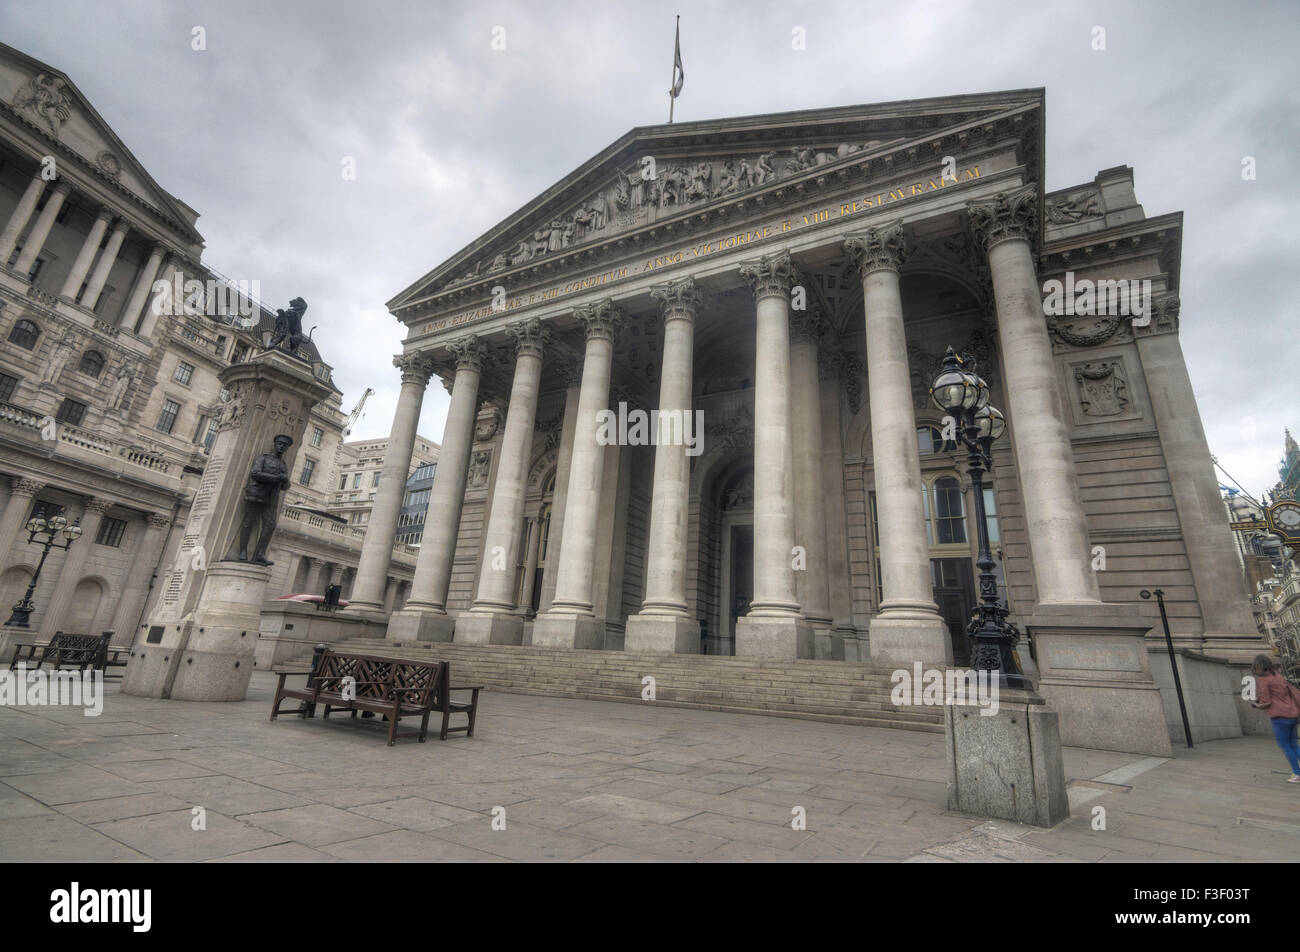 The royal exchange building in London - Stock Image